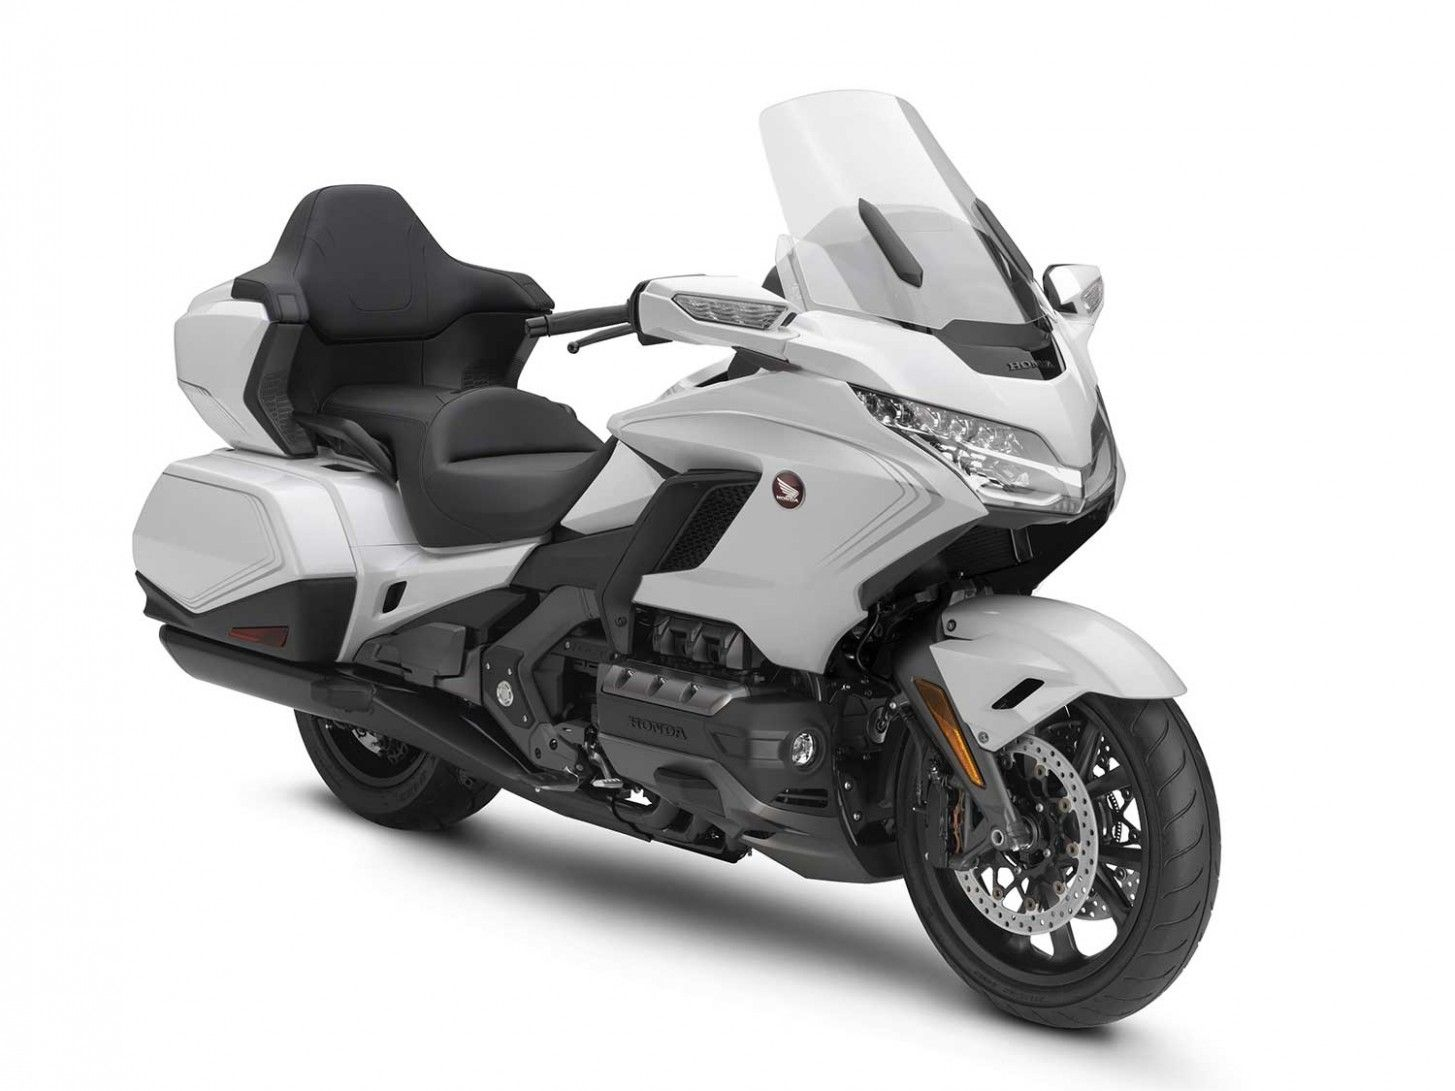 2021 Honda Goldwing